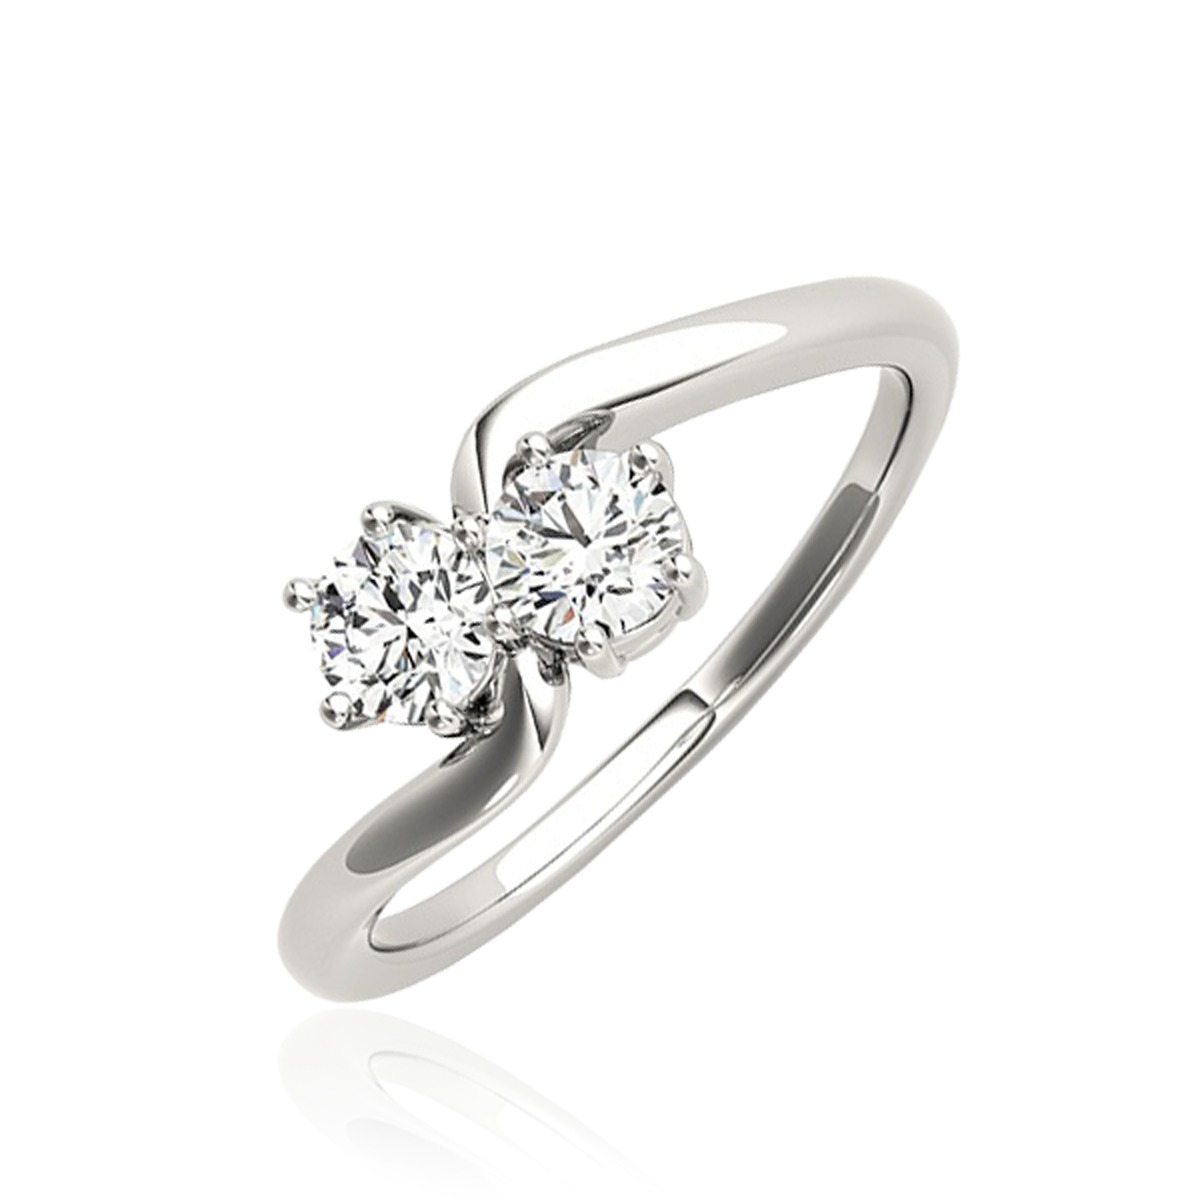 1/4 Carat T.W. Round Cut Diamond Two Stone Ring 14K White Gold